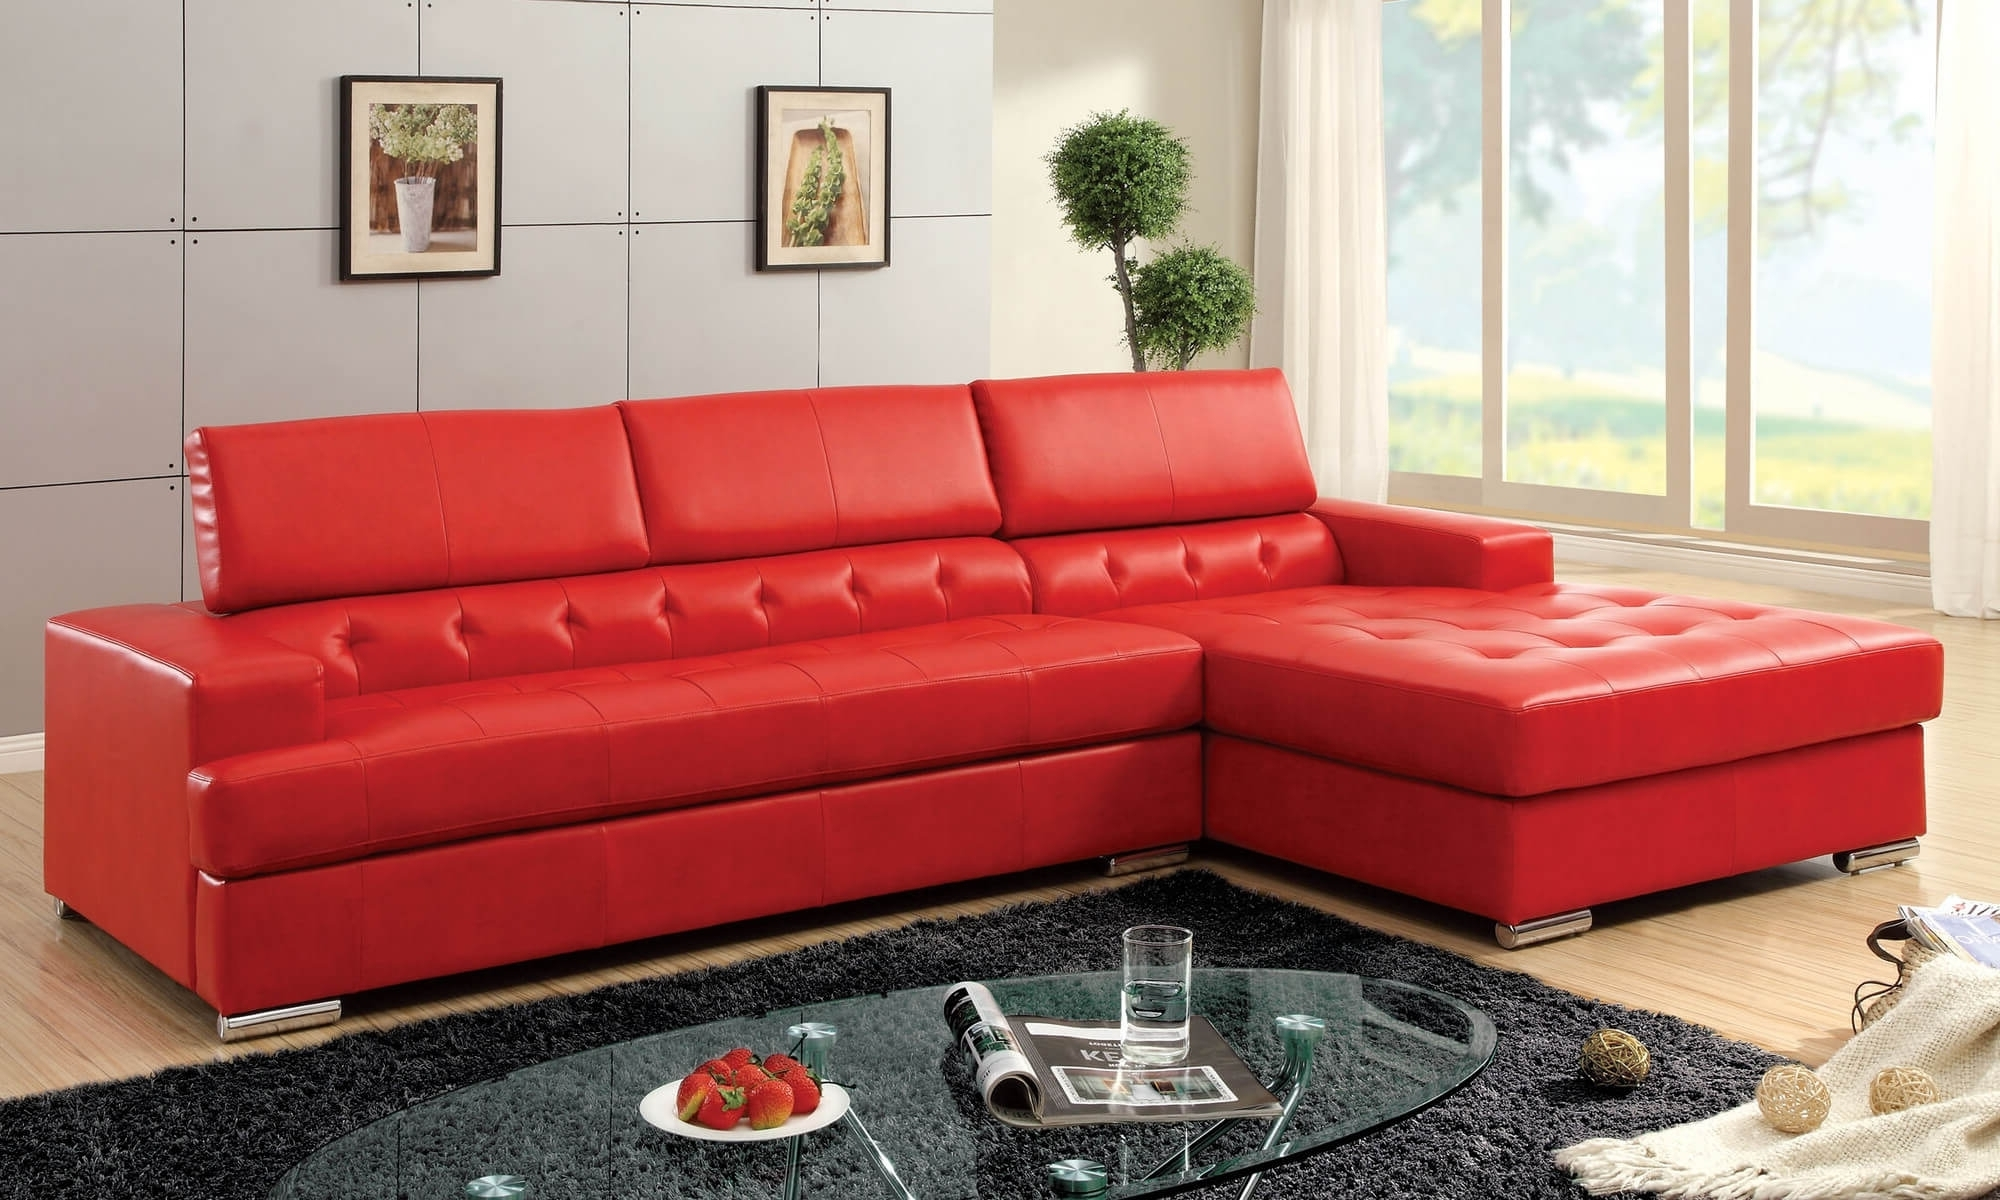 Freedom To Throughout Red Leather Sectionals With Ottoman (View 5 of 20)